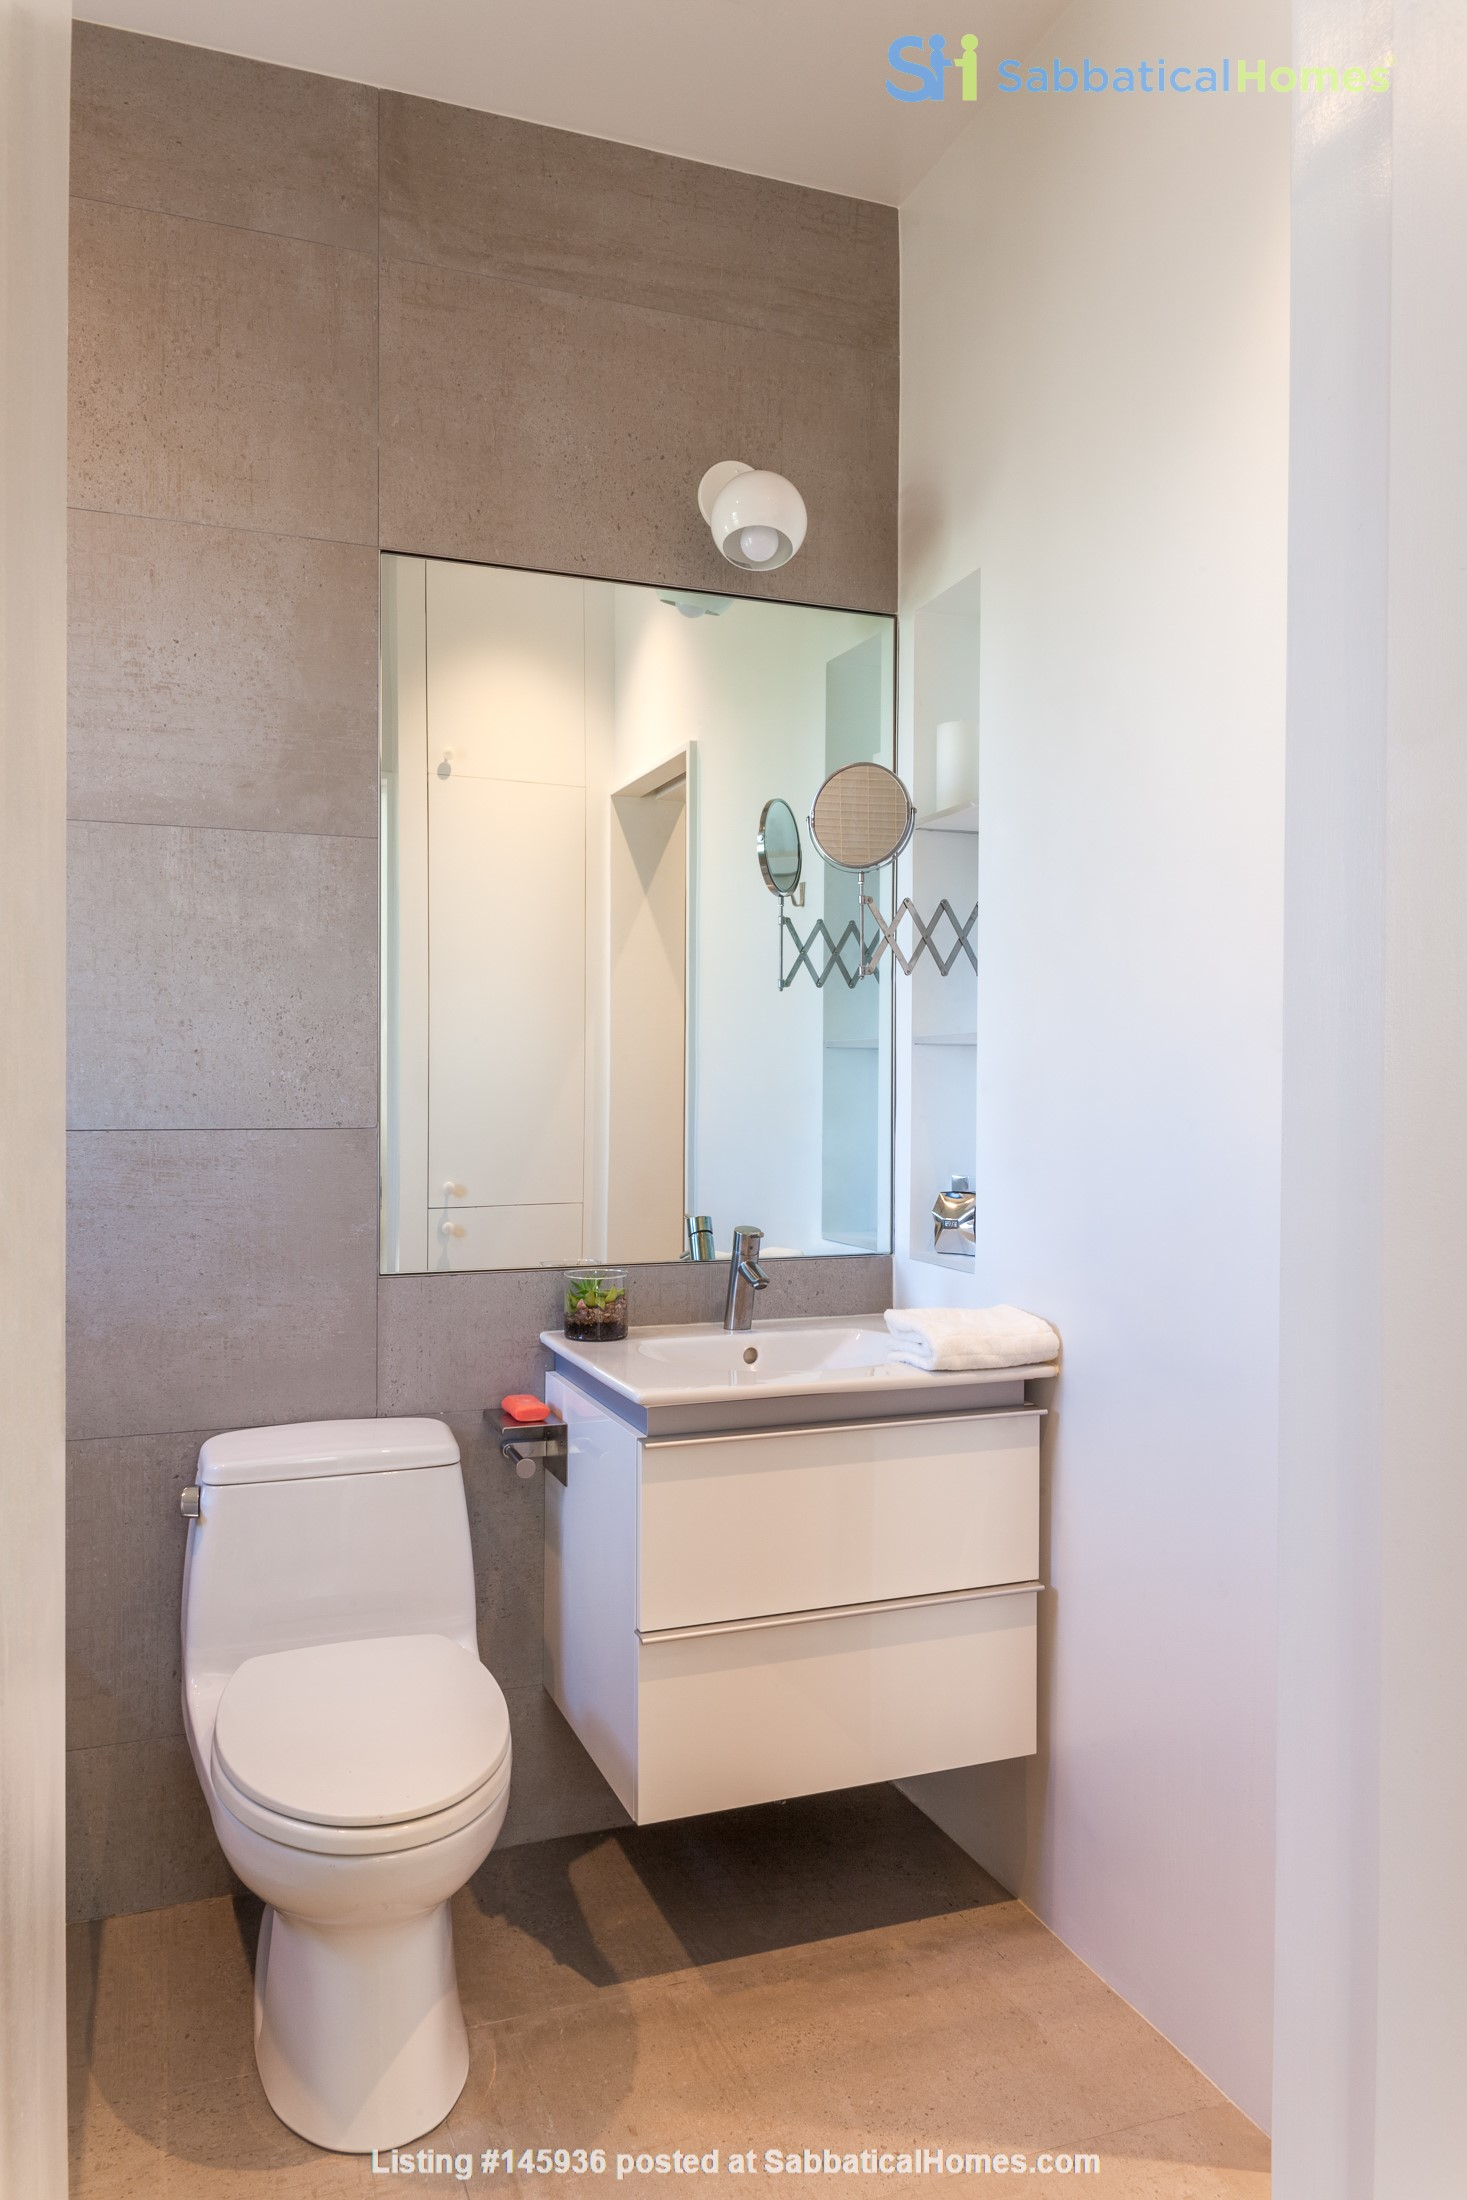 Sunny, Large, Renovated, Quiet, Ample 2BR+Studio/Office in Crown Heights Home Rental in  5